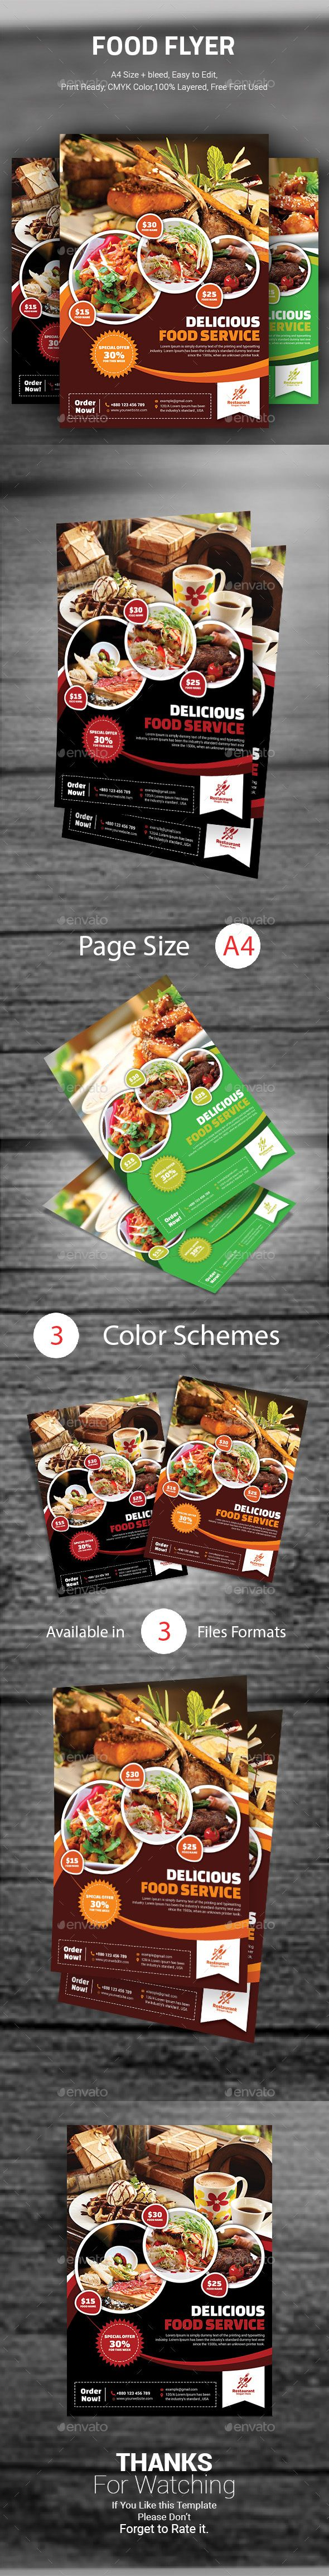 food flyer restaurant flyers this food flyer template can be